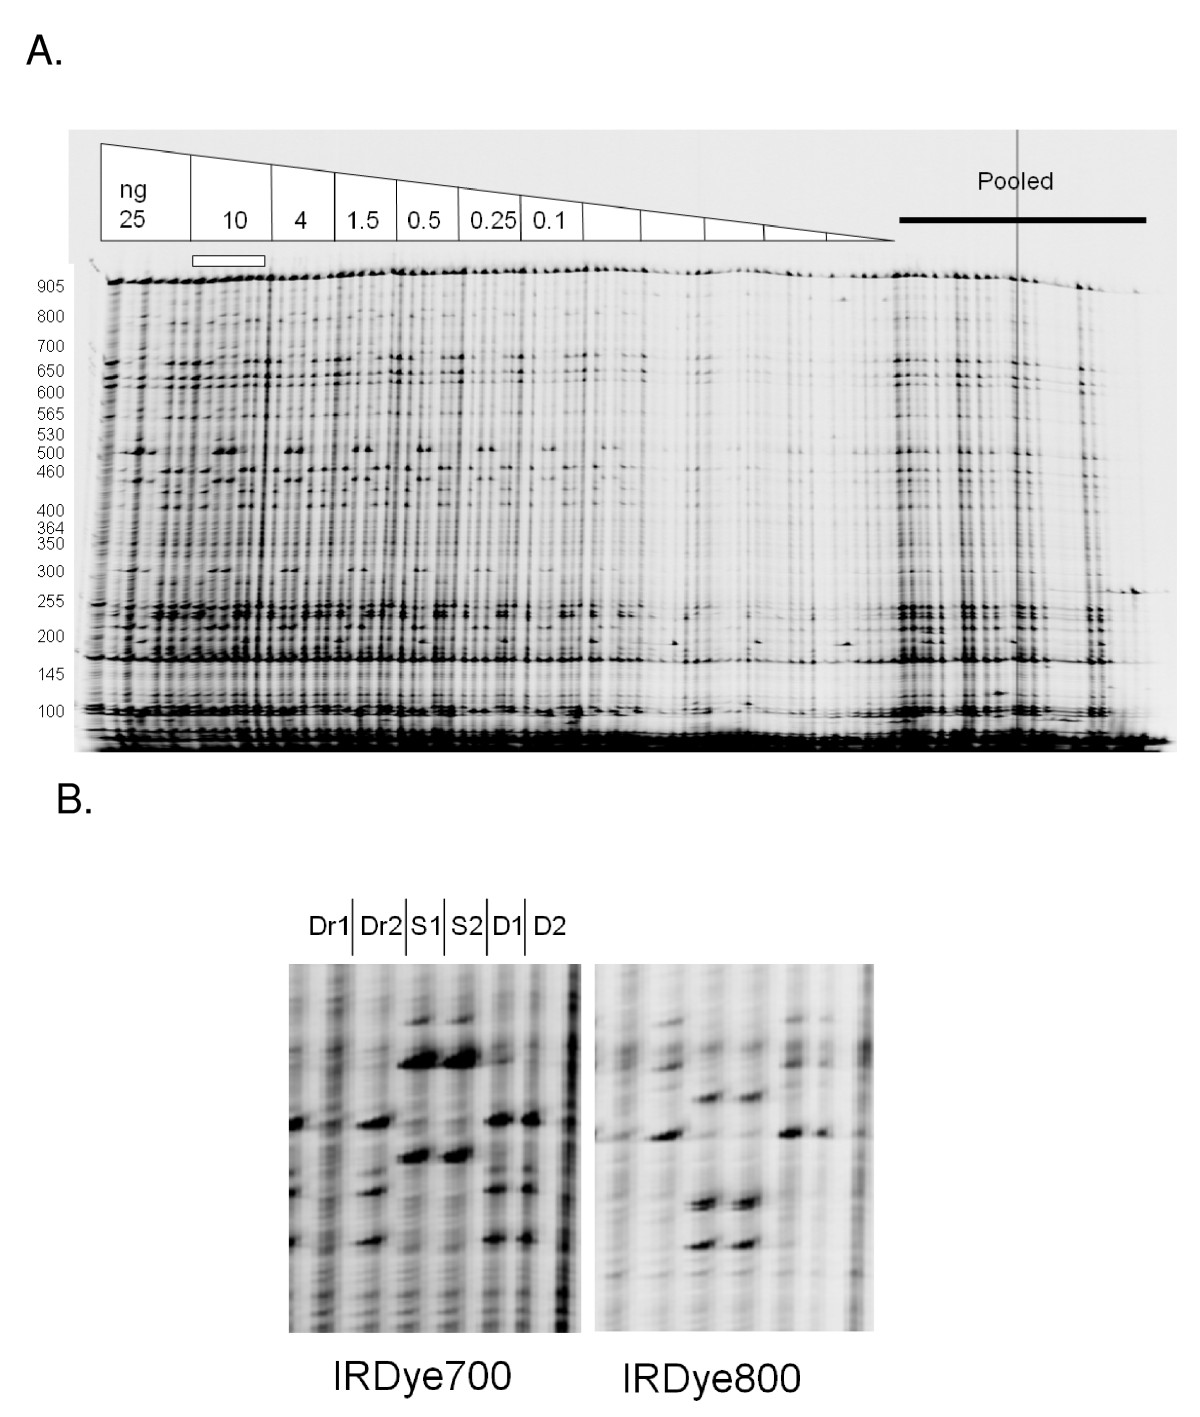 https://static-content.springer.com/image/art%3A10.1186%2F1756-0500-2-141/MediaObjects/13104_2009_Article_279_Fig1_HTML.jpg